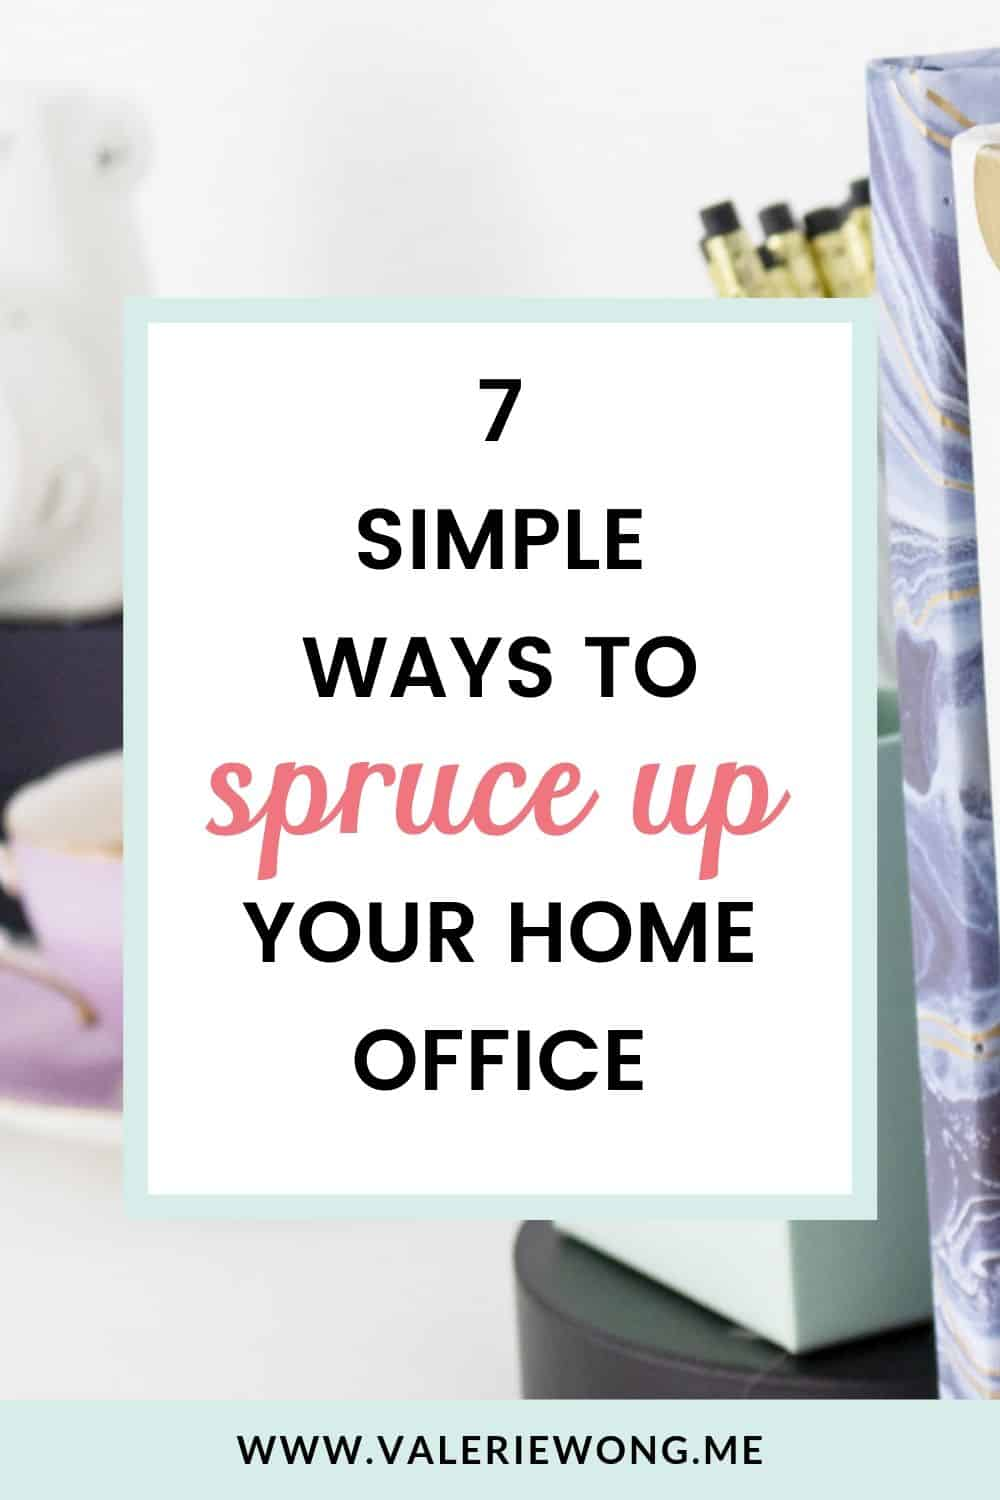 7 simple ways to spruce up your home office on a budget | If you're a work-from-home solopreneur and your home office is feeling stale and uninspiring, it may be time to freshen up your work space! Try some of these affordable ideas for sprucing up your home office so you have a work space that makes you feel energized, inspired, focused, and productive! | Valerie Wong Wellness #valeriewong #homeoffice #homeofficeideas #solopreneurtips #workfromhome #entrepreneurtips via @valeriewonglifecoach